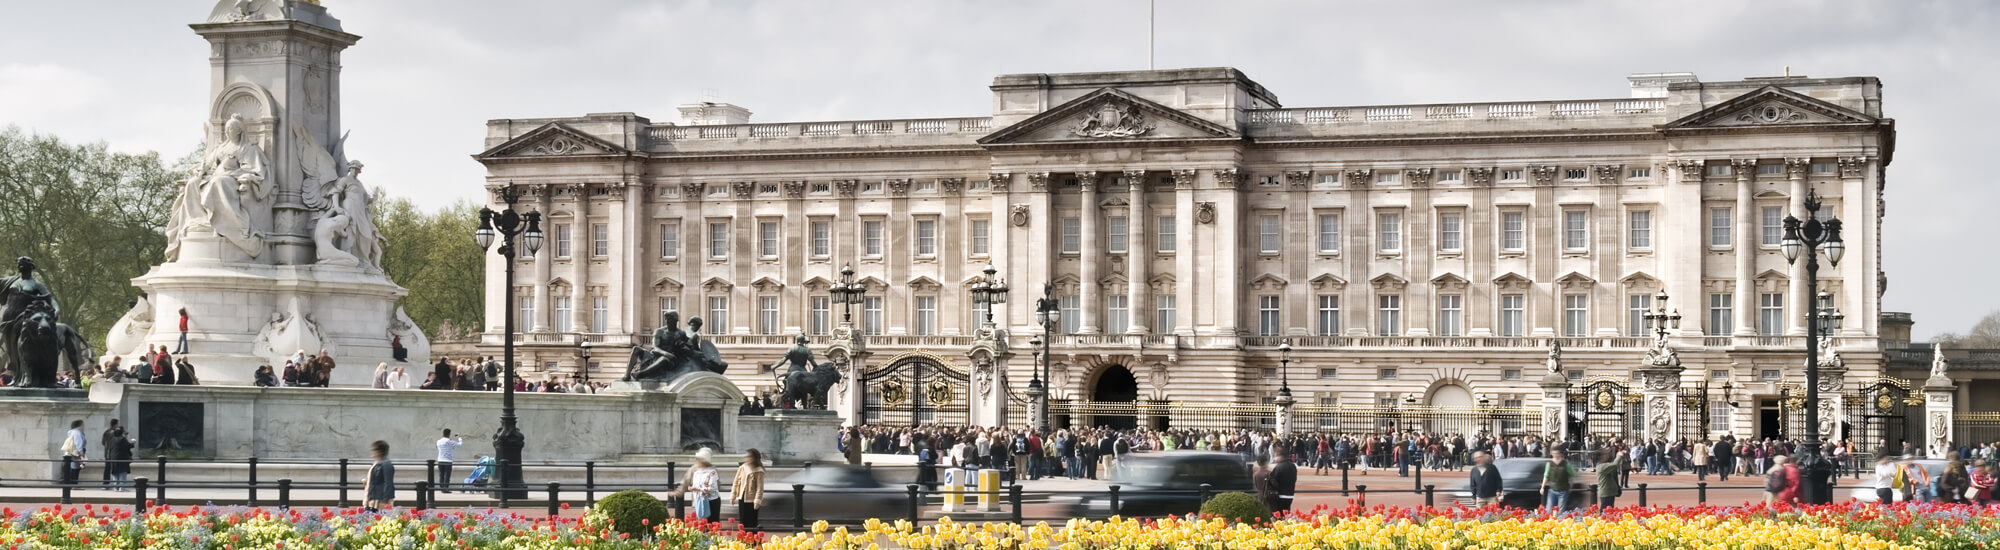 Buckingham Palace London Tour